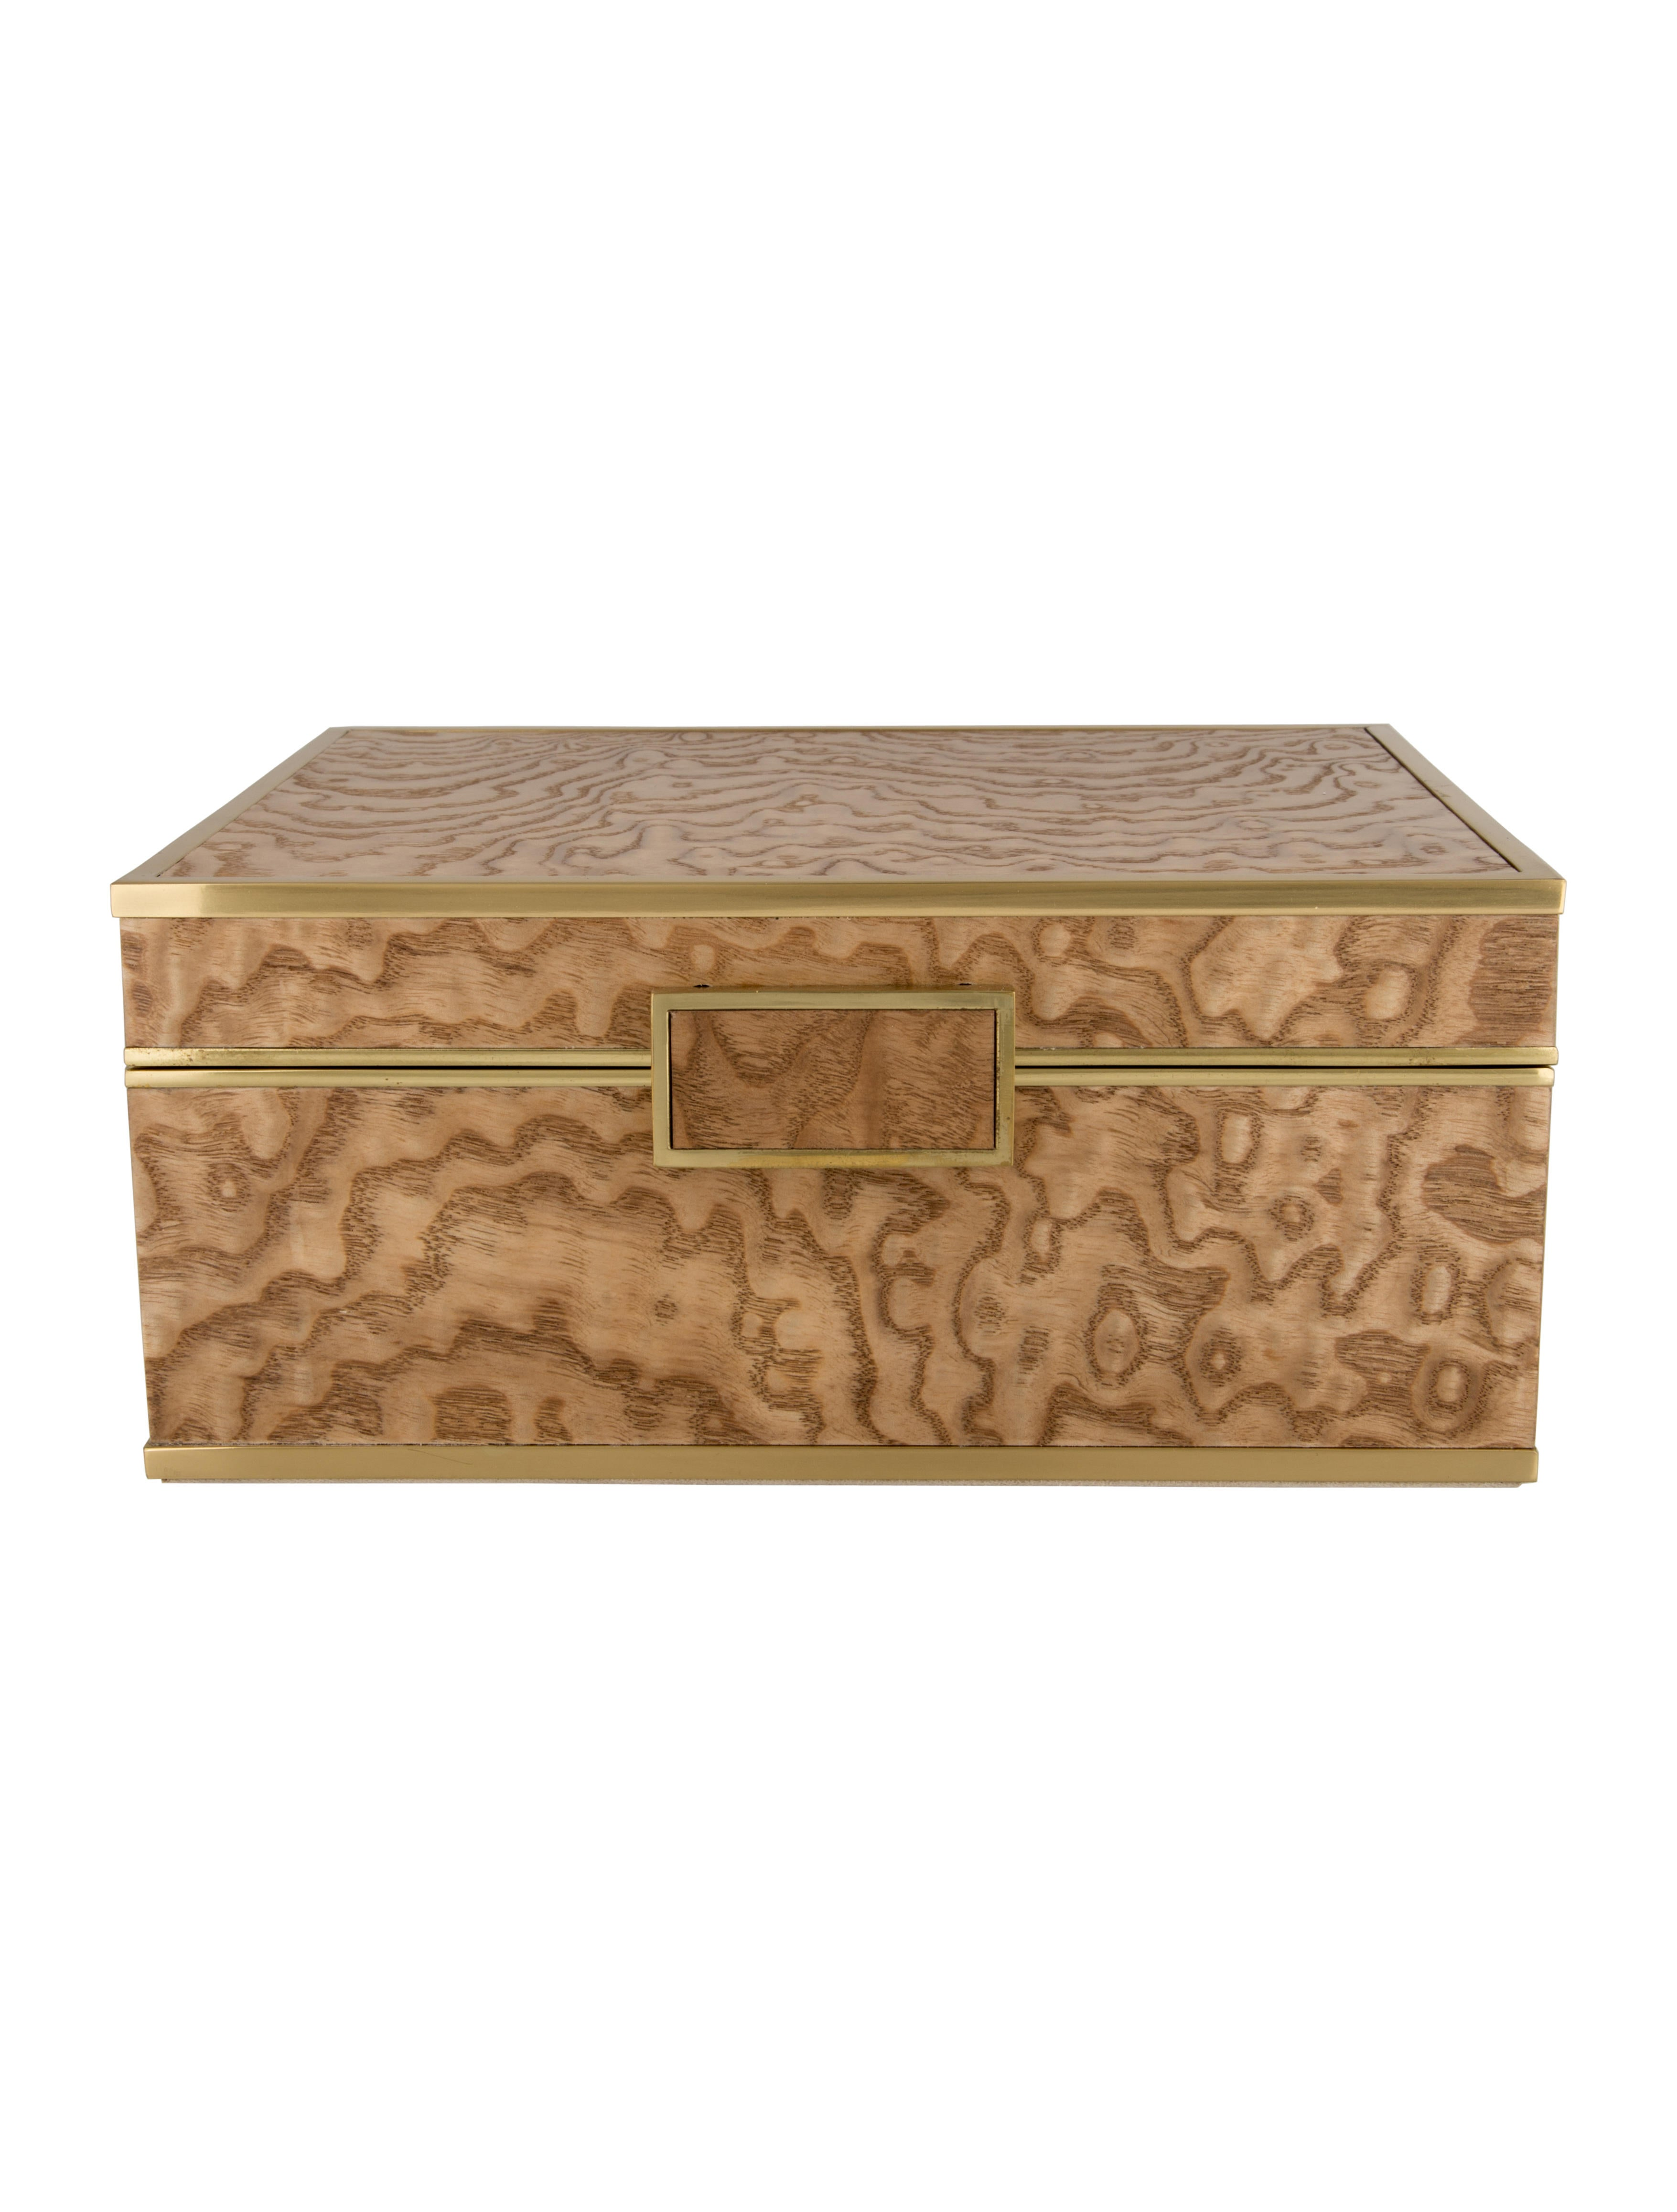 Aerin Burlwood Jewelry Box Decor And Accessories Aer20122 The Realreal